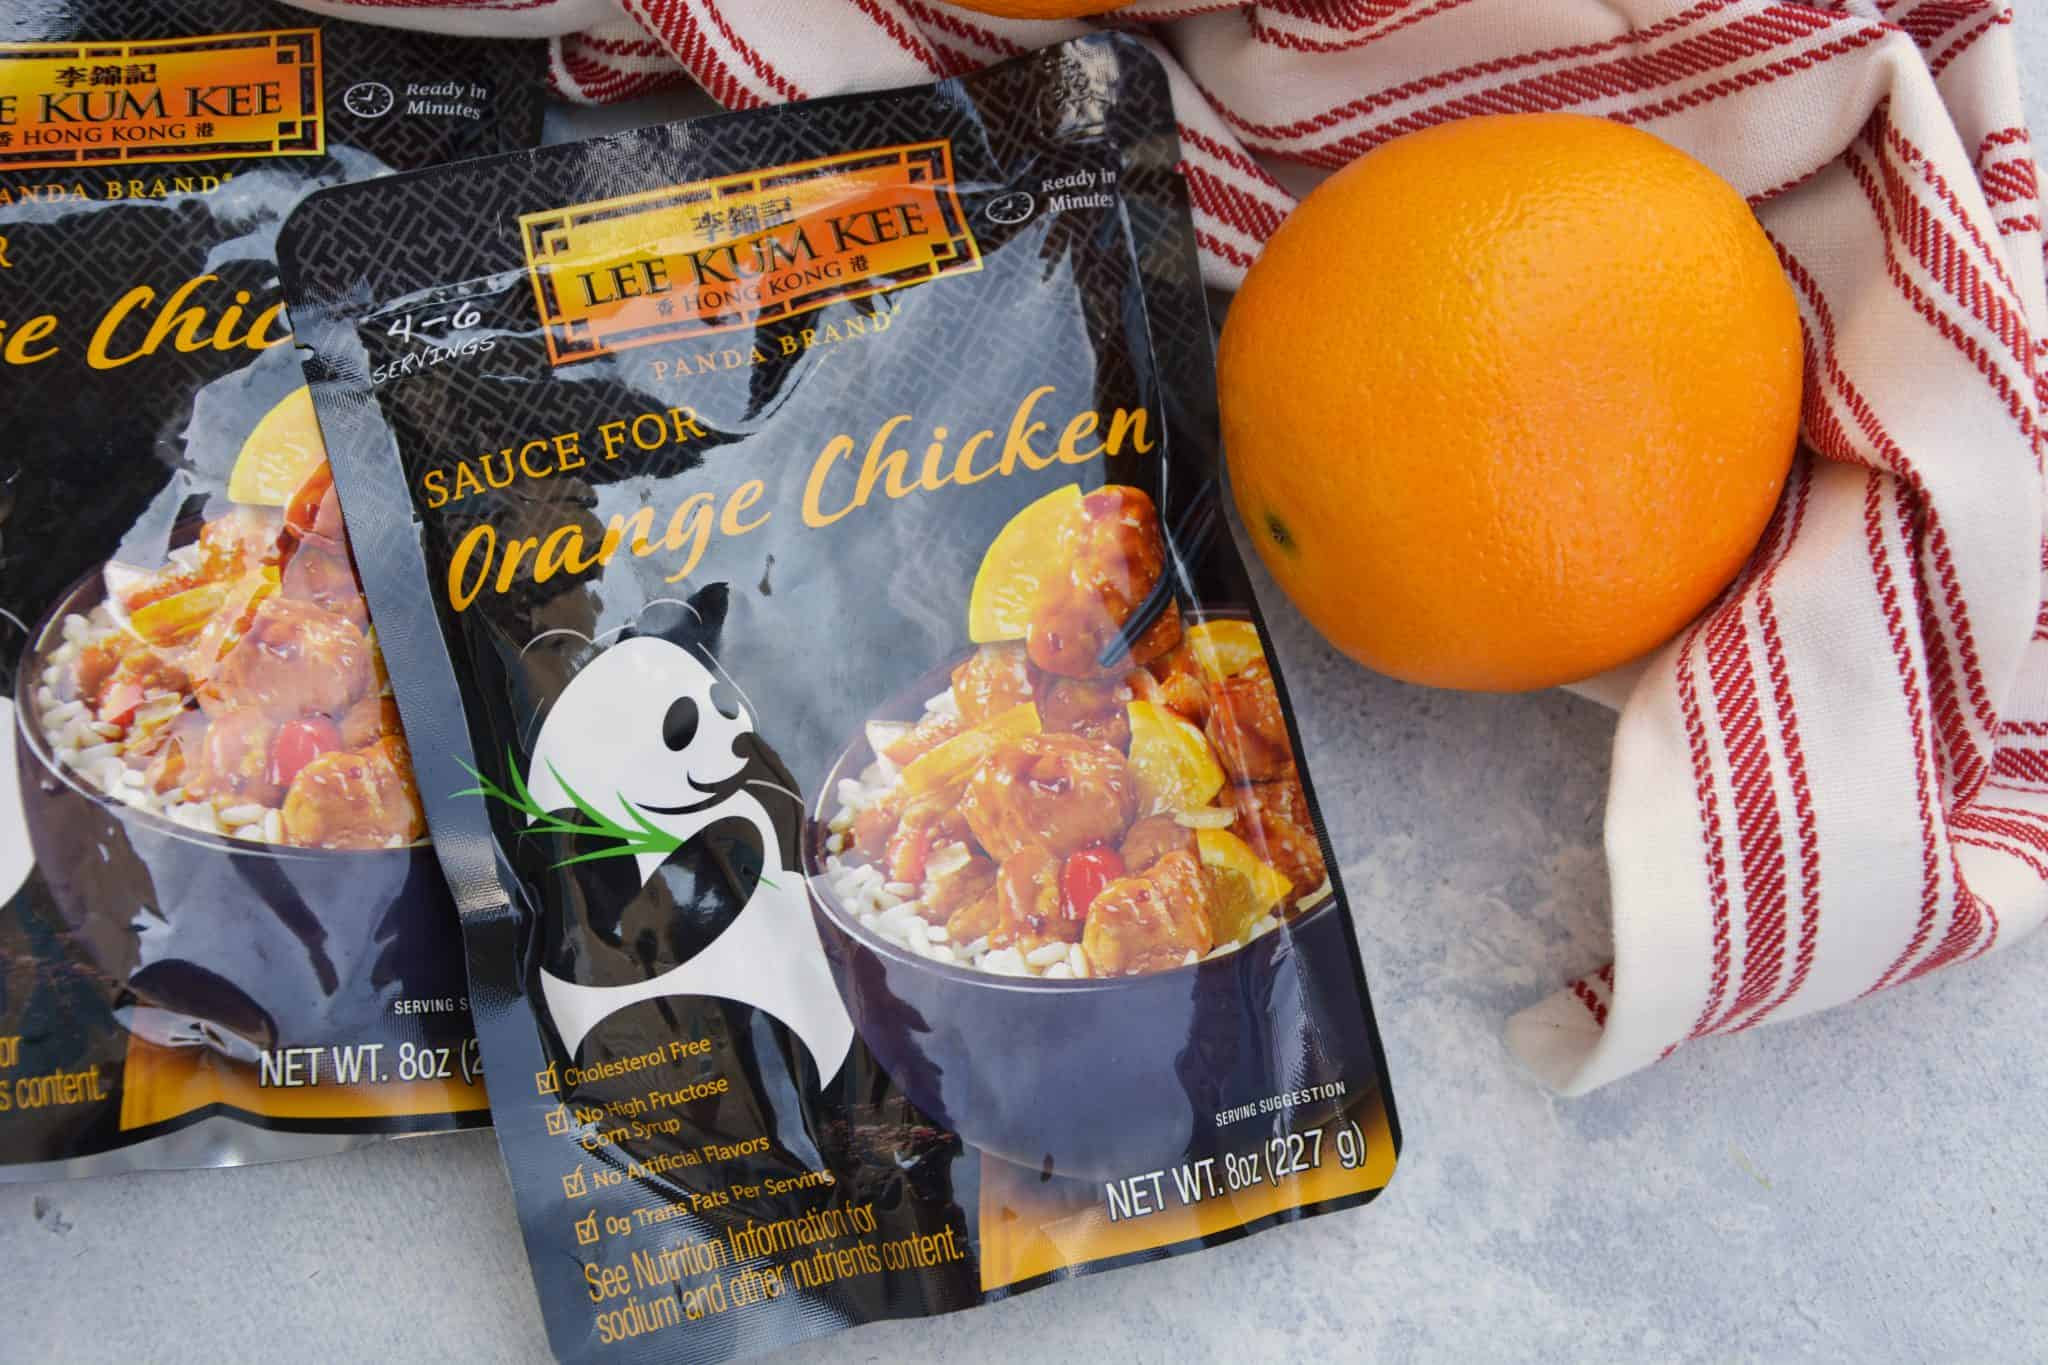 This post is sponsored by Lee Kum Kee, however 100% of thoughts and opinions are my own. This Chinese Orange Chicken recipe will fulfill all of your Chinese food cravings. Super easy in only 20 minutes and less than 10 ingredients and you will be digging into your better-than-takeout orange chicken! The ideal dinner solution for busy school nights. This Orange Chicken Recipe is amped up with bell pepper, baby corn and carrots in a delicious savory orange sauce over rice. Garnish with scallions, sesame seeds and orange zest for the best homemade Chinese food. When I think of delicious Chinese food, my mind goes straight to a hot plate of orange chicken. There is nothing like it. And I've never been able to create the sauce well at home, so I buy it. And my sauce of choice is Lee Kum Kee Panda Brand™ Ready Sauce for Orange Chicken! You can prepare a delicious Orange Chicken dish in minutes just by mixing your own fresh ingredients with this pre-made sauce. Lee Kum Kee Panda Brand™ Ready Sauce for Orange Chicken is stocked in my pantry for easy weeknight meals and dinner on the run. Whether it is a busy school night or I just want to spend less time in the kitchen and more time with my family, this sauce makes it easy to whip up a tasty meal in minutes. For my Orange Chicken recipe, I like to use chicken thigh fillets, although breasts are perfectly acceptable. The dark meat on thighs stay tender and juicy when cut smaller and fried whereas other cuts might dry out fast. As I was making this Easy Orange Chicken (and stealing bites from the serving dish) my mind started to dream about the other awesome recipes I could make with it other than traditional Orange Chicken. What about Orange Chicken Egg Rolls? An Orange Chicken Pizza? With onions and broccoli florets? Why not grill drumsticks and baste them with this delicious Orange Sauce? And the list doesn't even stop at chicken! Shrimp, scallops and even beef all come to mind. The possibilities are endless and now I'm thinking up even more creative ways to use my favorite Chinese sauce. For today, I'll be serving it up traditionally. I guess my other daydream creations will have to wait for another weeknight in need of a quick dinner. Why choose Lee Kum Kee? They are a great-tasting brand and leading maker of 200+ authentic Asian sauces and condiments for over 100 years. Why recreate the wheel? Lee Kum Kee makes it easy to enjoy authentic, restaurant-quality Asian flavors in the comfort of your own home. You probably already have some of their sauces in your pantry and they can easily take your ho-hum recipes to a new level regardless of whether they are Asian inspired or not. You can feel good serving Panda Brand™ Sauce to your family because it is free of high fructose corn syrup, MSG and preservatives. They only use premium, non-GMO ingredients and also have several gluten-free options. In celebration of Lee Kum Kee's 130th anniversary, the brand is hosting a recipe contest for a chance to win a cash prize. Click HERE for more details and to learn more about the contest. Watch our Easy Orange Chicken Video!